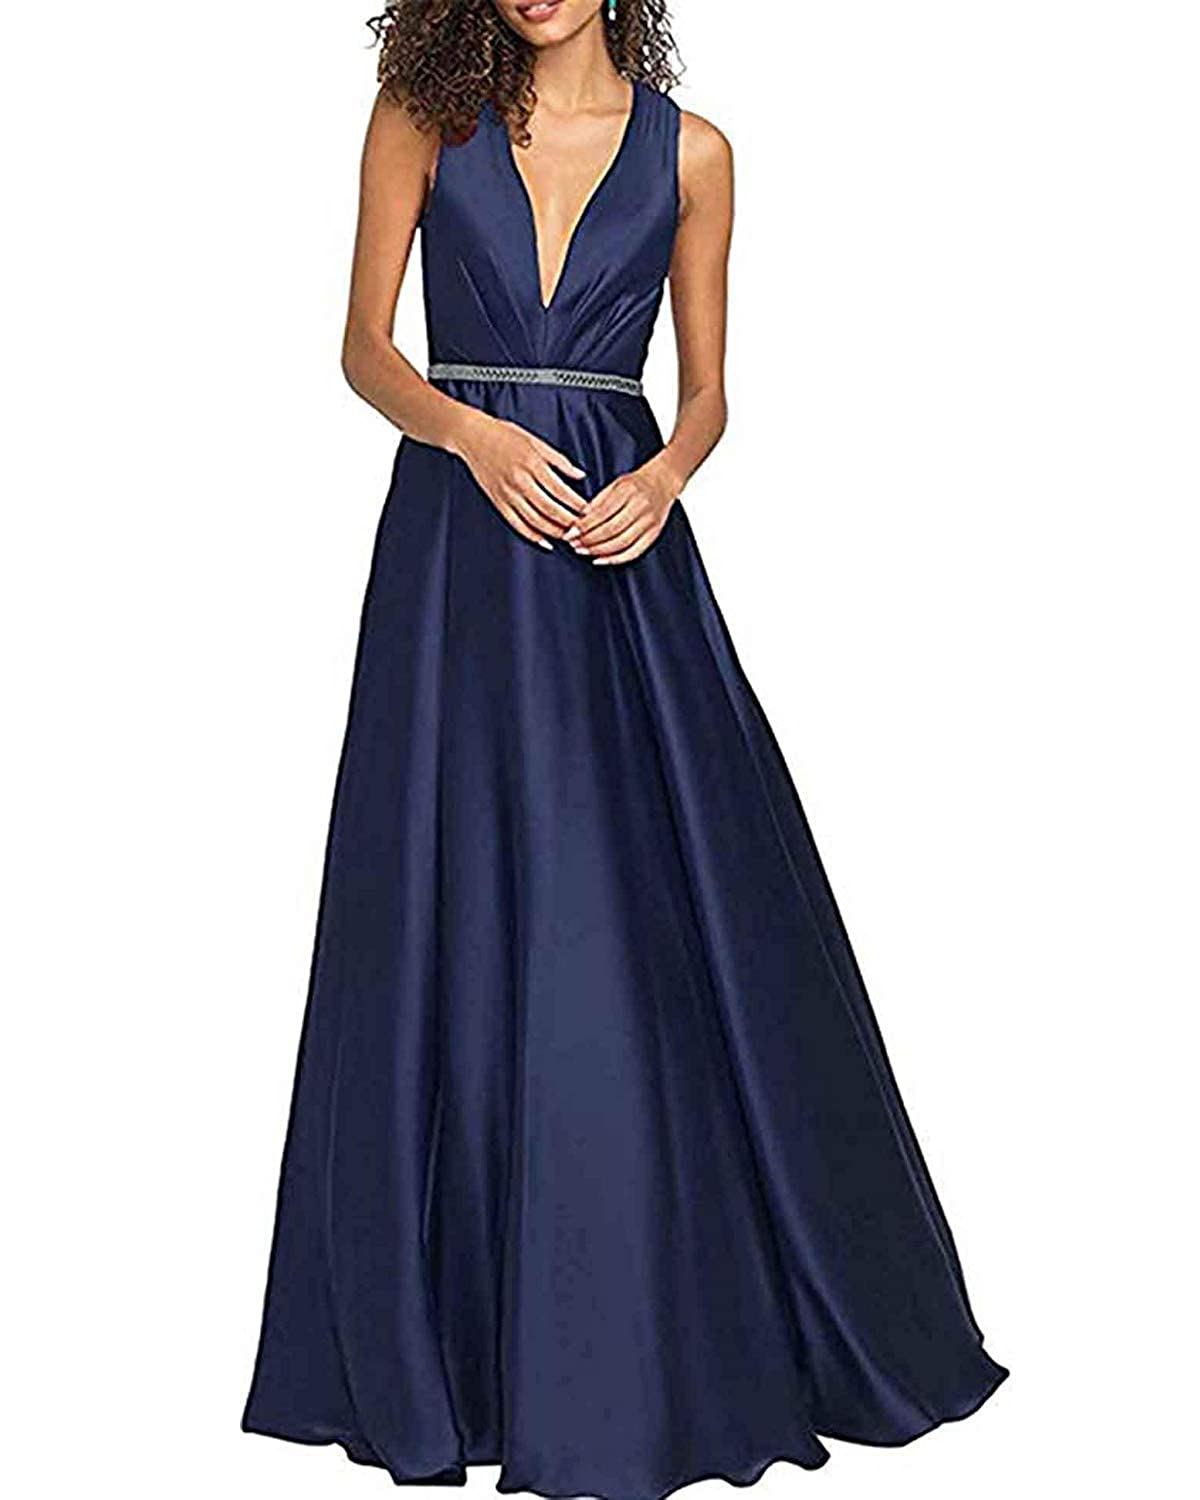 Navy bluee WHLWHL ALine VNeck Long Party Prom Gown for Women Formal Evening Dress with Pockets